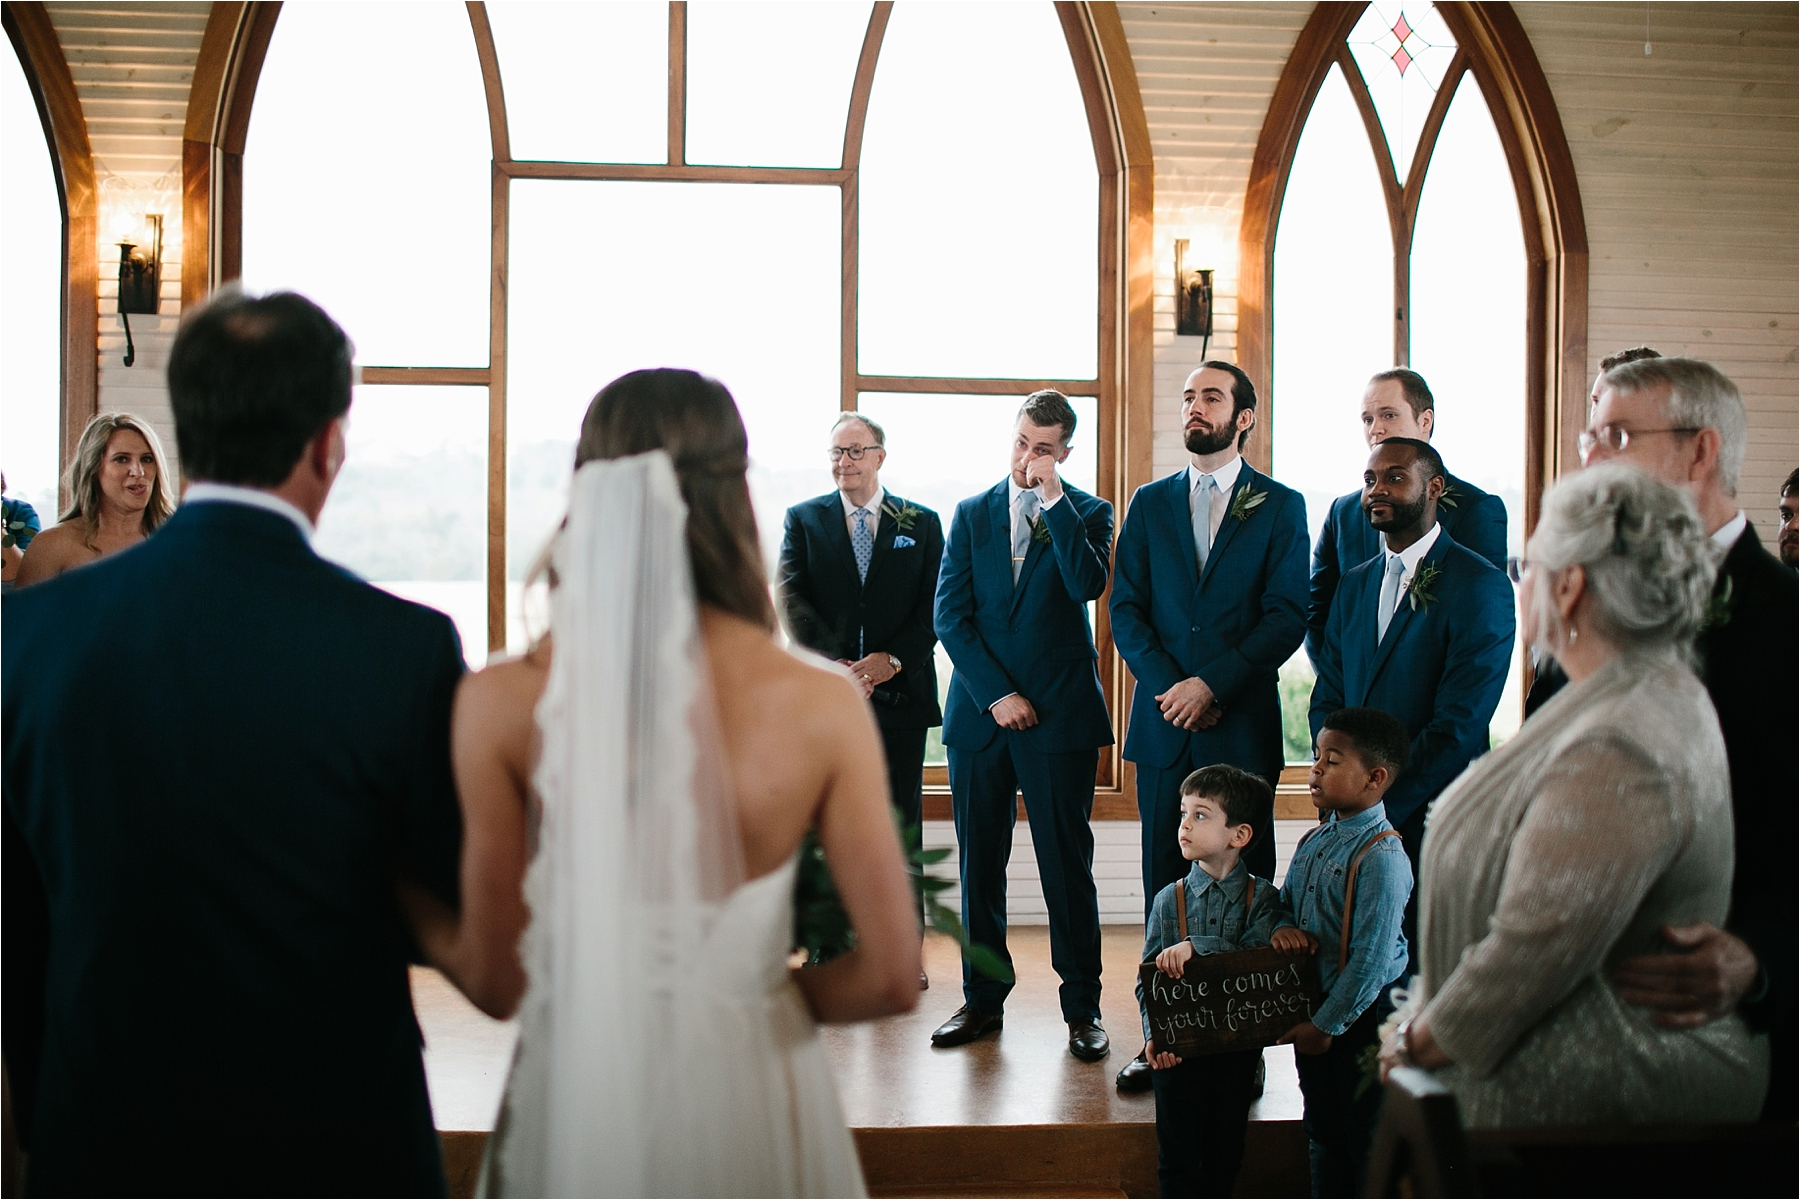 Lauren + Matt __ an intimate, emotional, blush pink, navy blue, and greenery toned wedding accents at the Brooks at Weatherford by North Texas Wedding Photographer Rachel Meagan Photography116